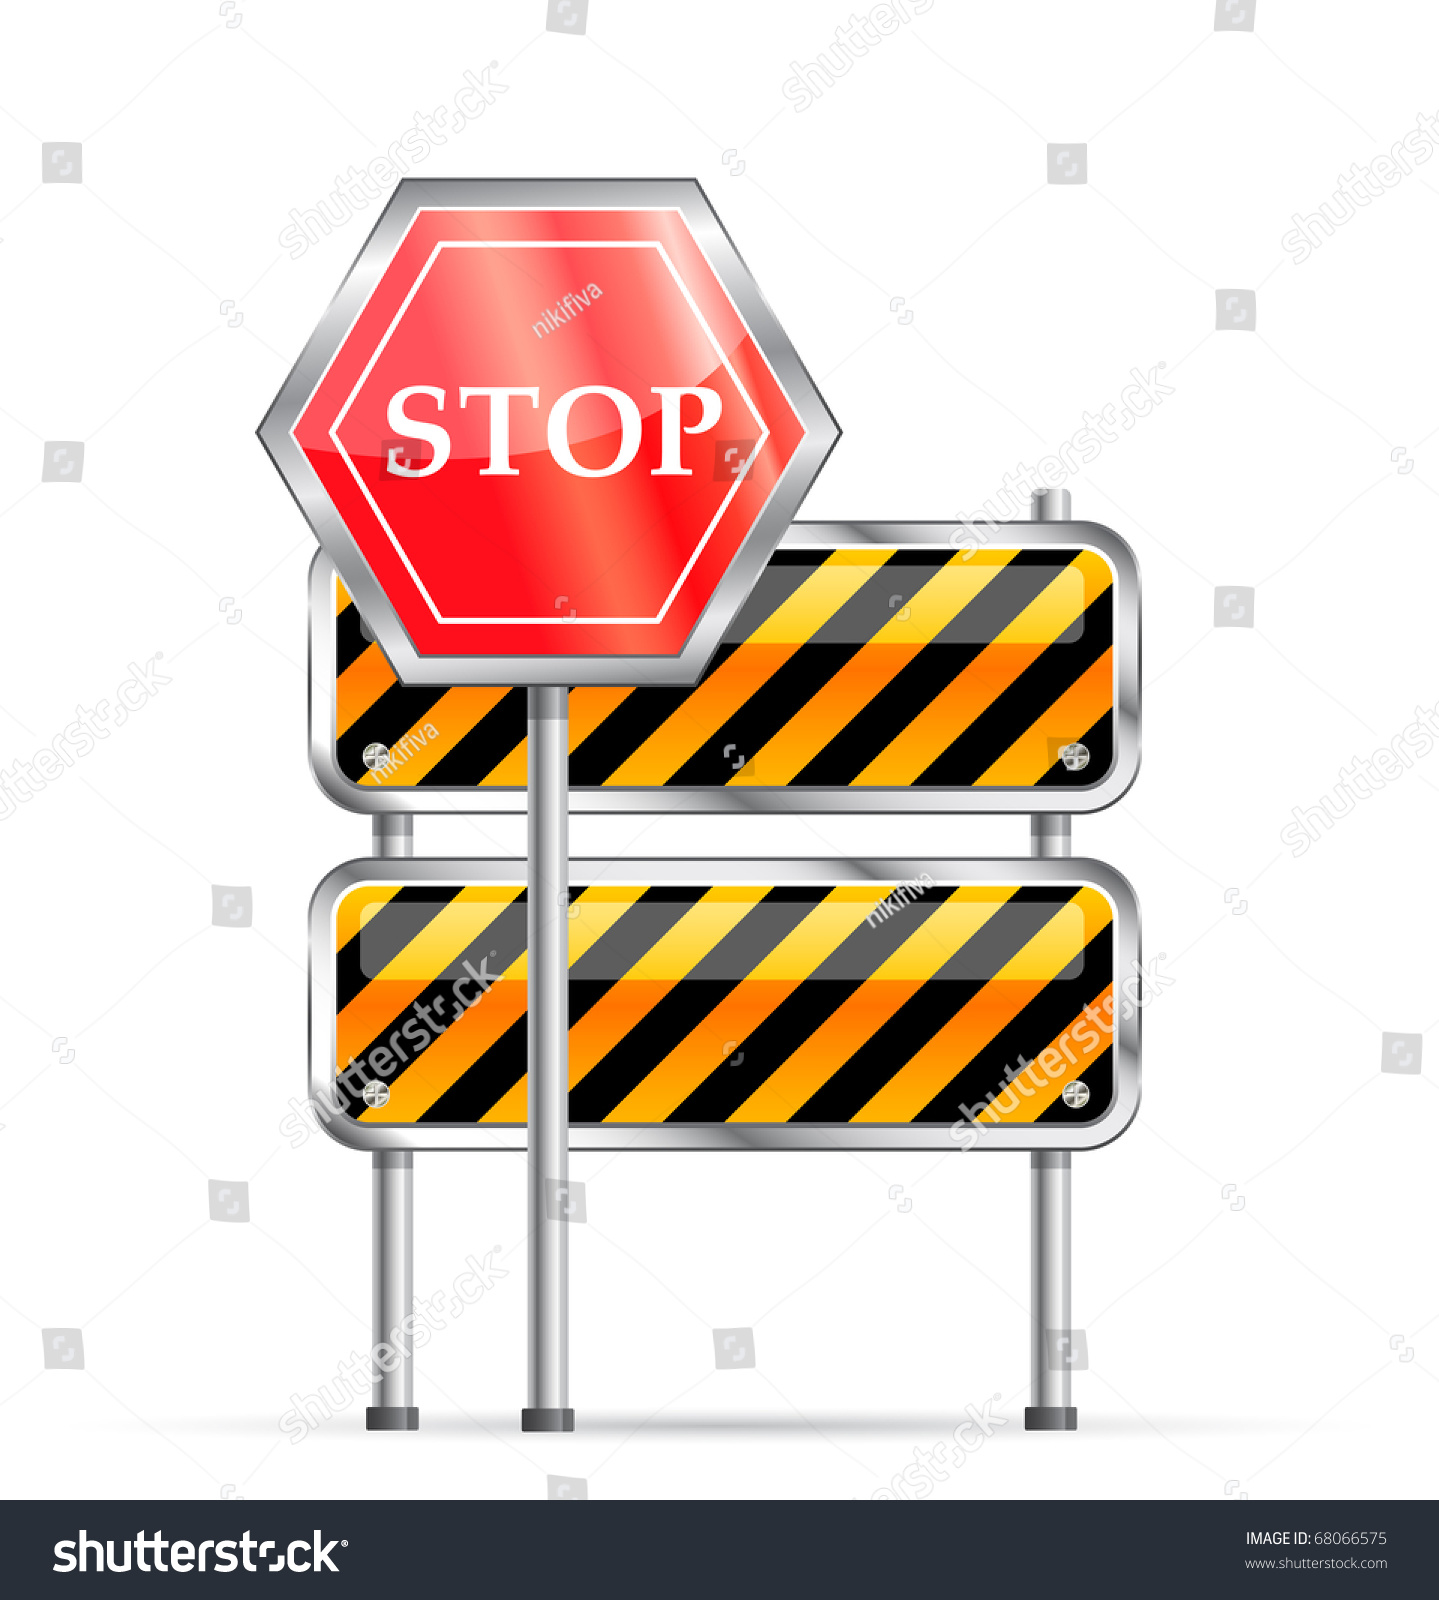 Road Barricade Signs Stock Vector Stop Road Sign And Striped Barrier